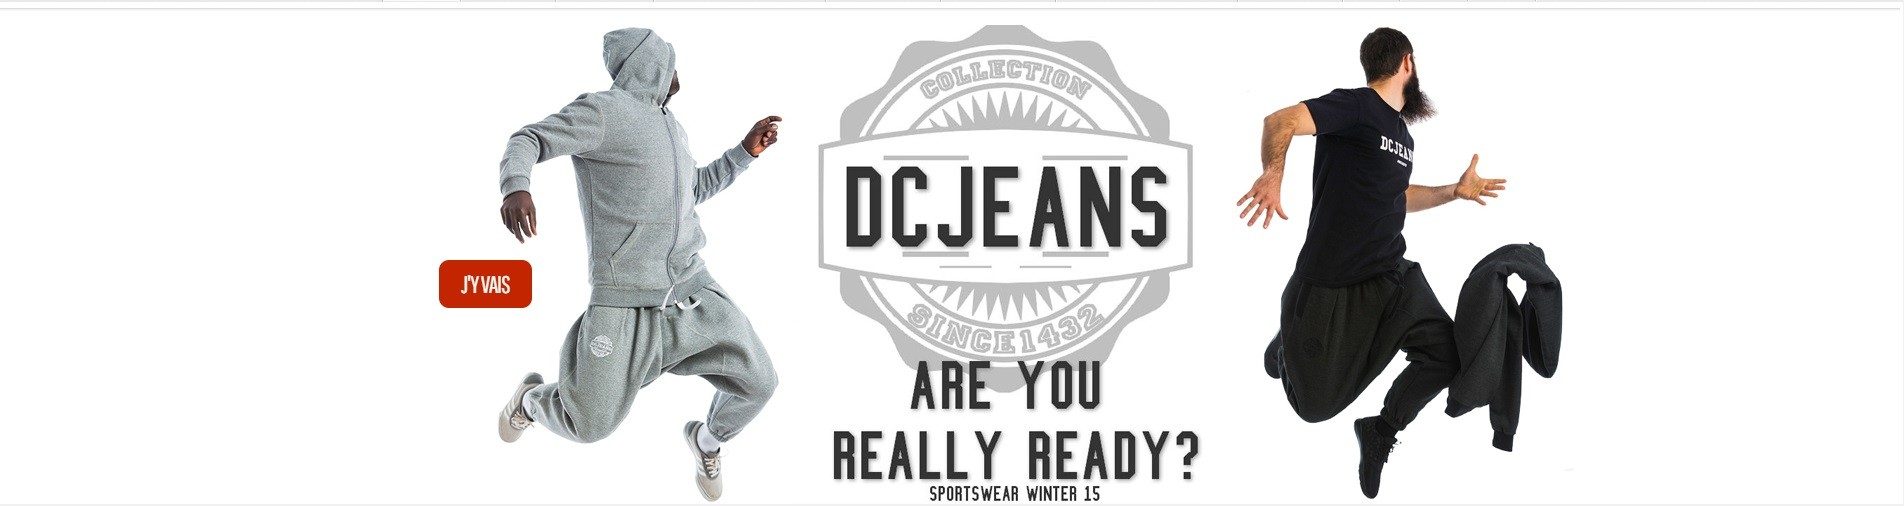 Collection DC Jeans